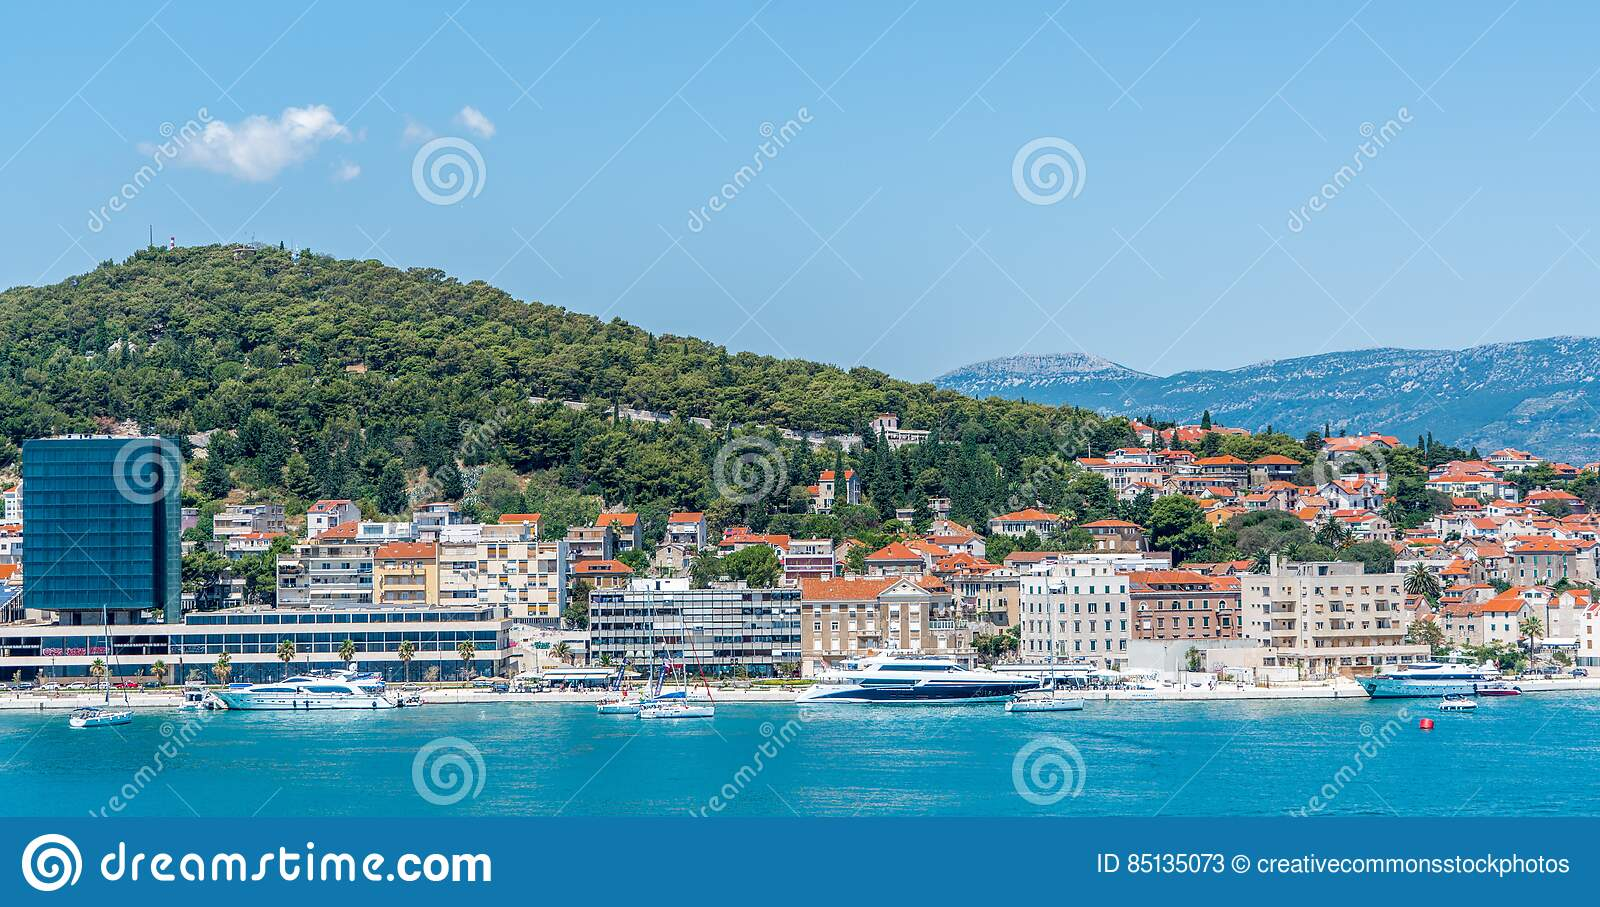 Download City Buildings Near Body Of Water And Mountain Stock Image - Image of architecture, free: 85135073